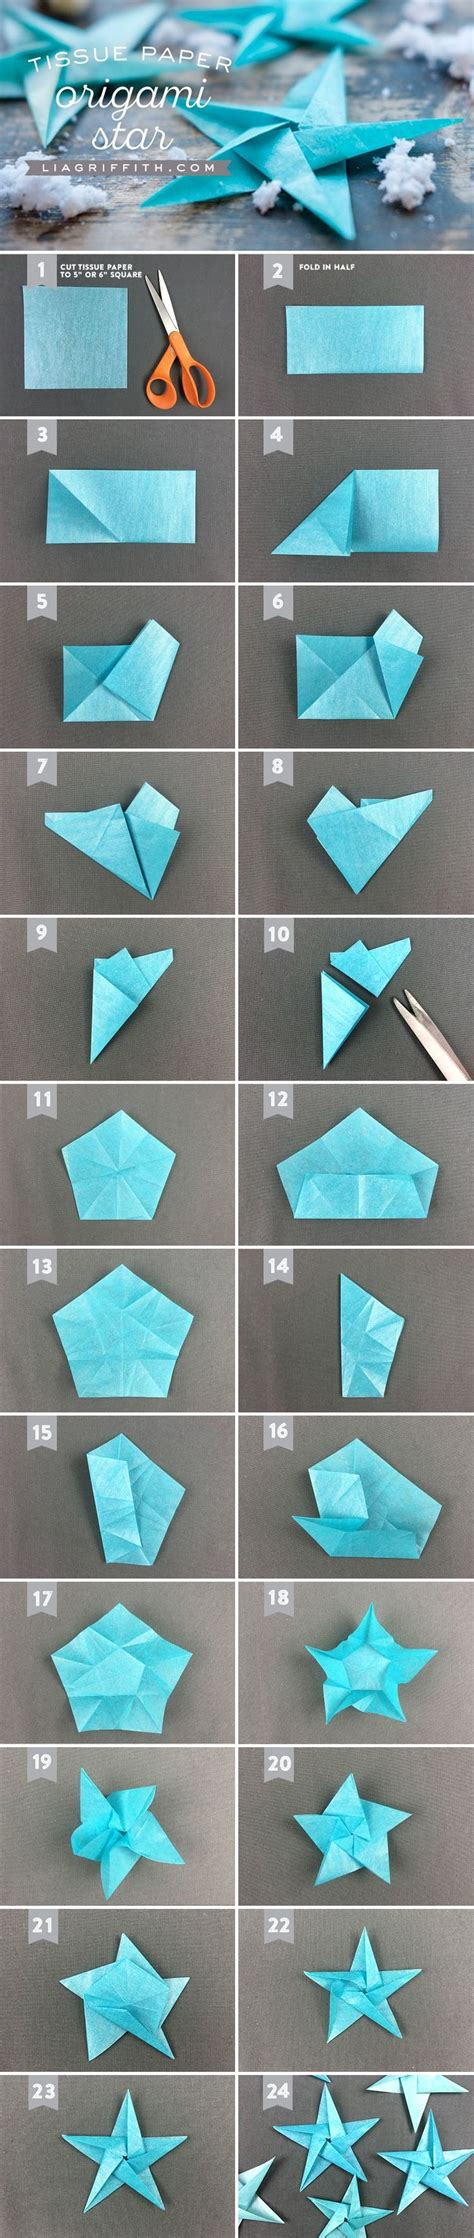 How To Make Paper Ornaments Step By Step - best 25 origami step by step ideas on diy